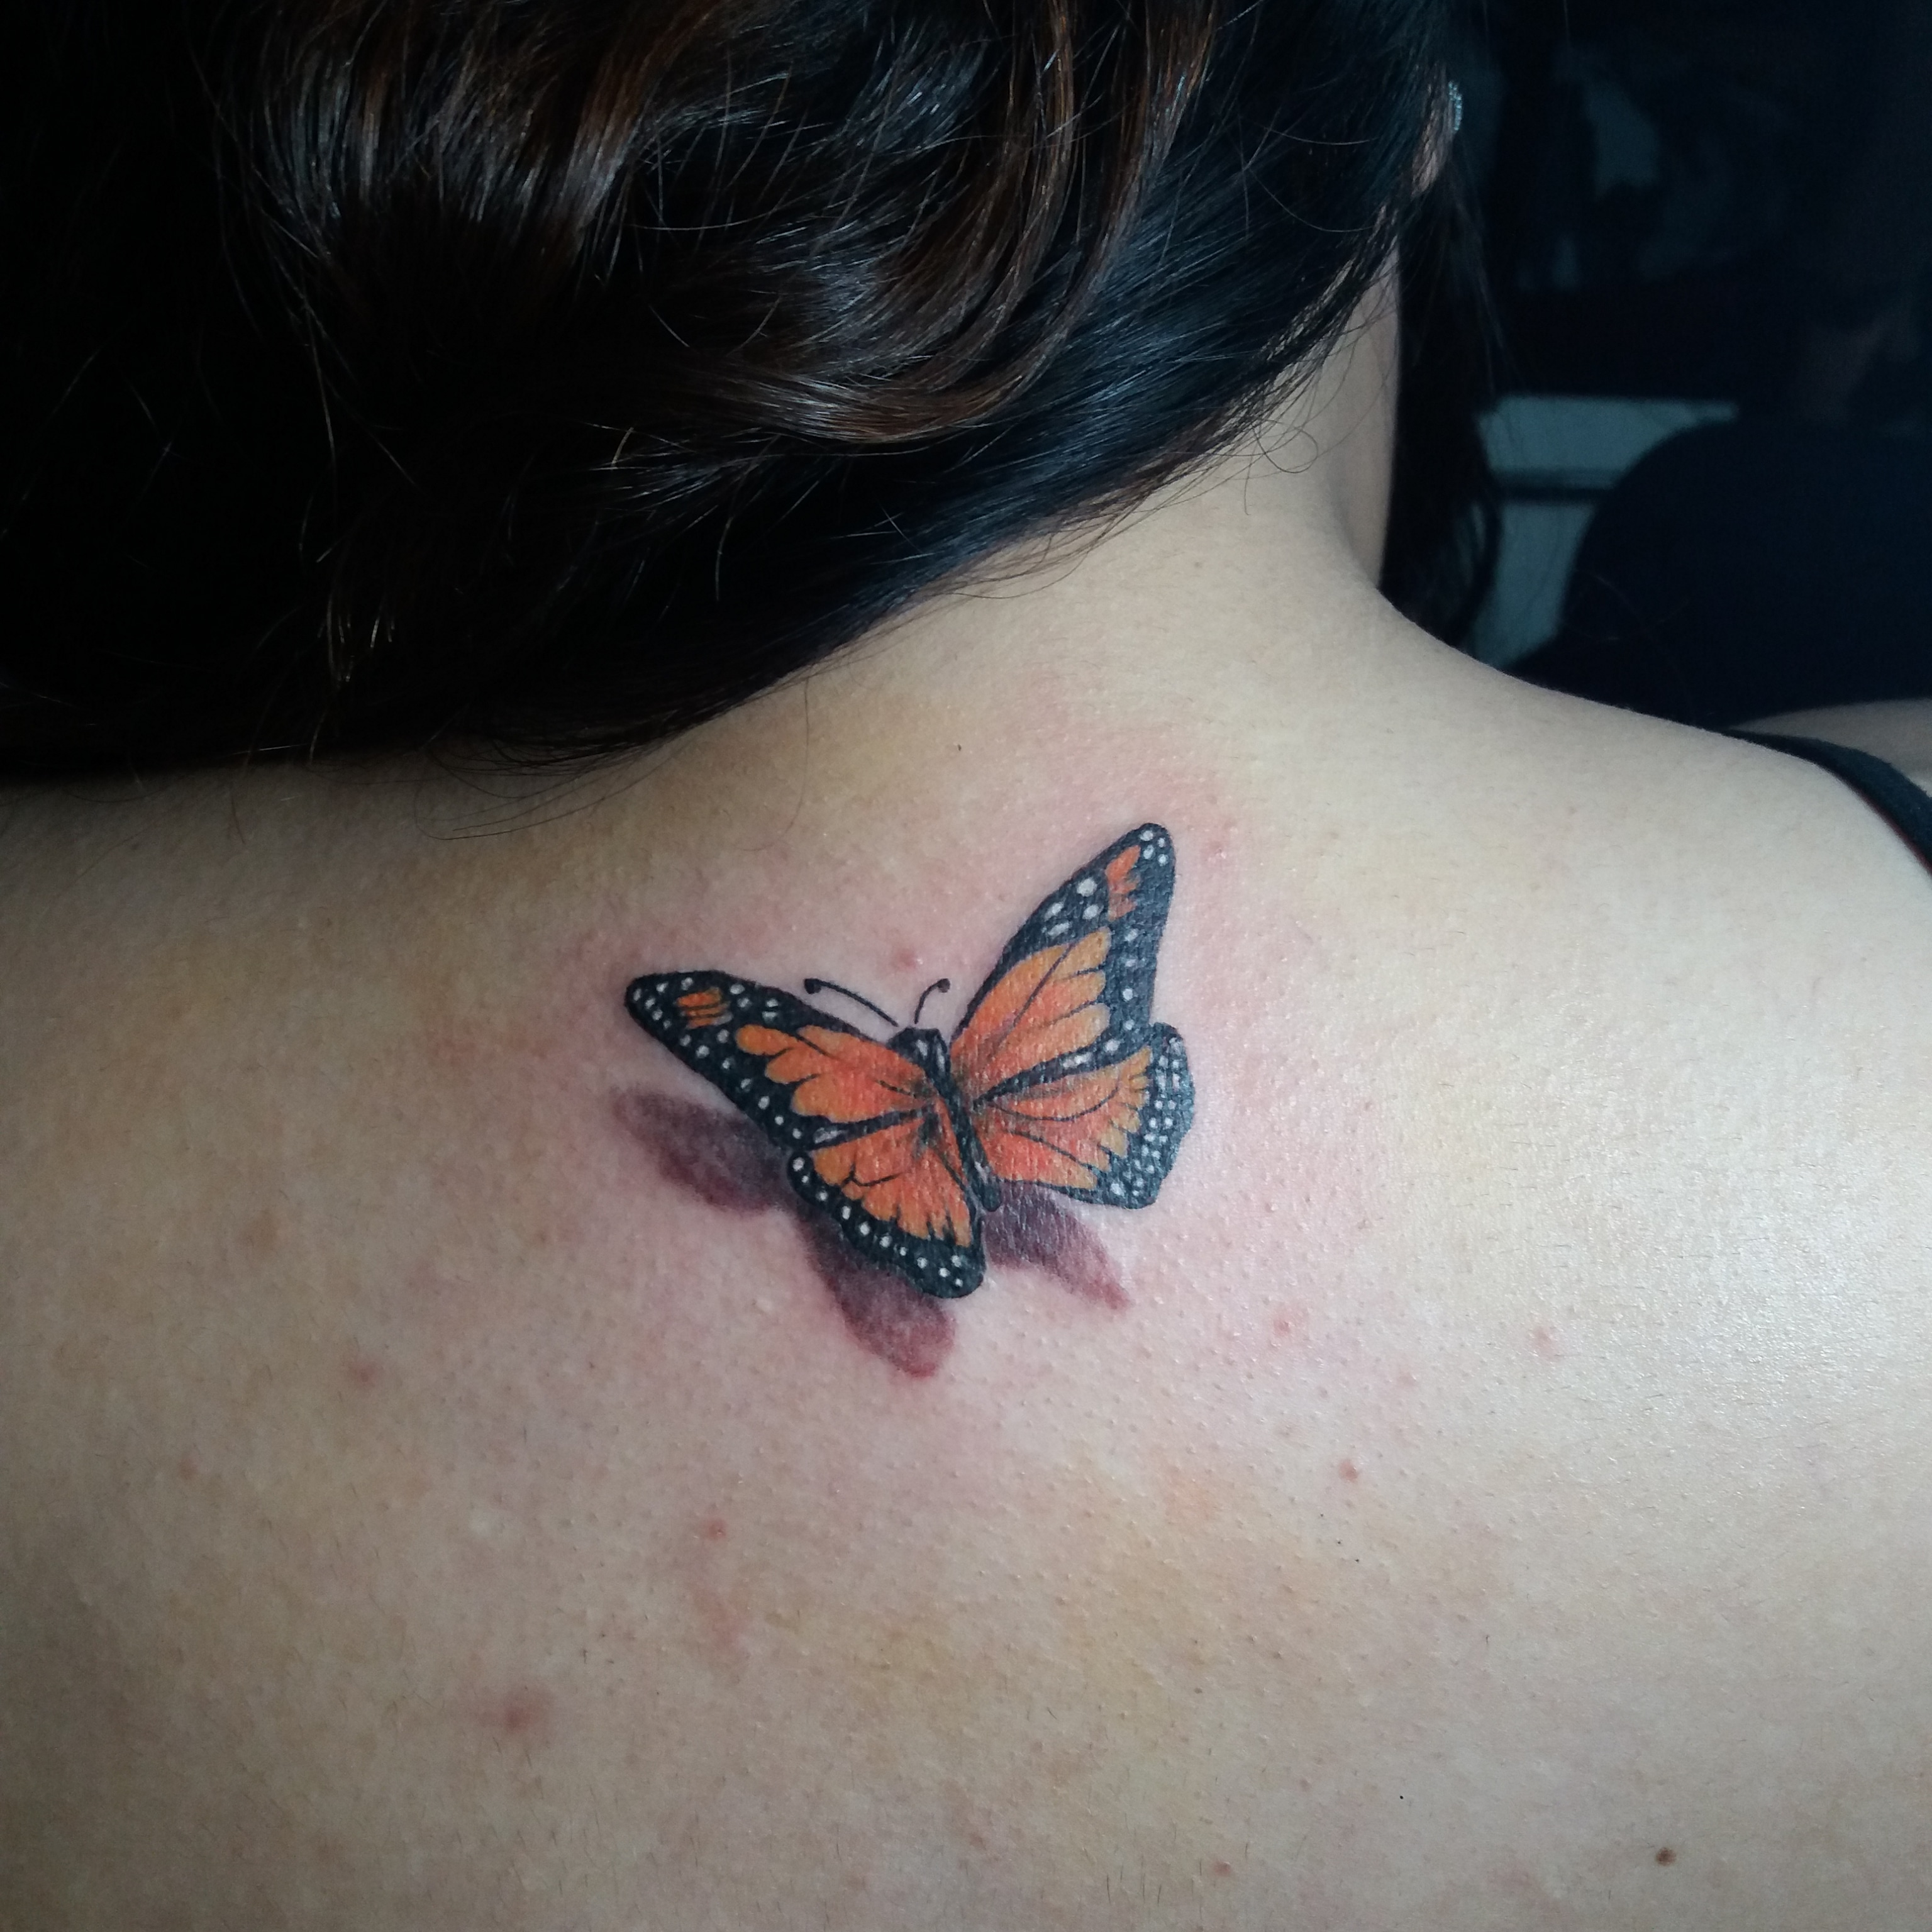 butterfly tattoo for girls. Black Bedroom Furniture Sets. Home Design Ideas